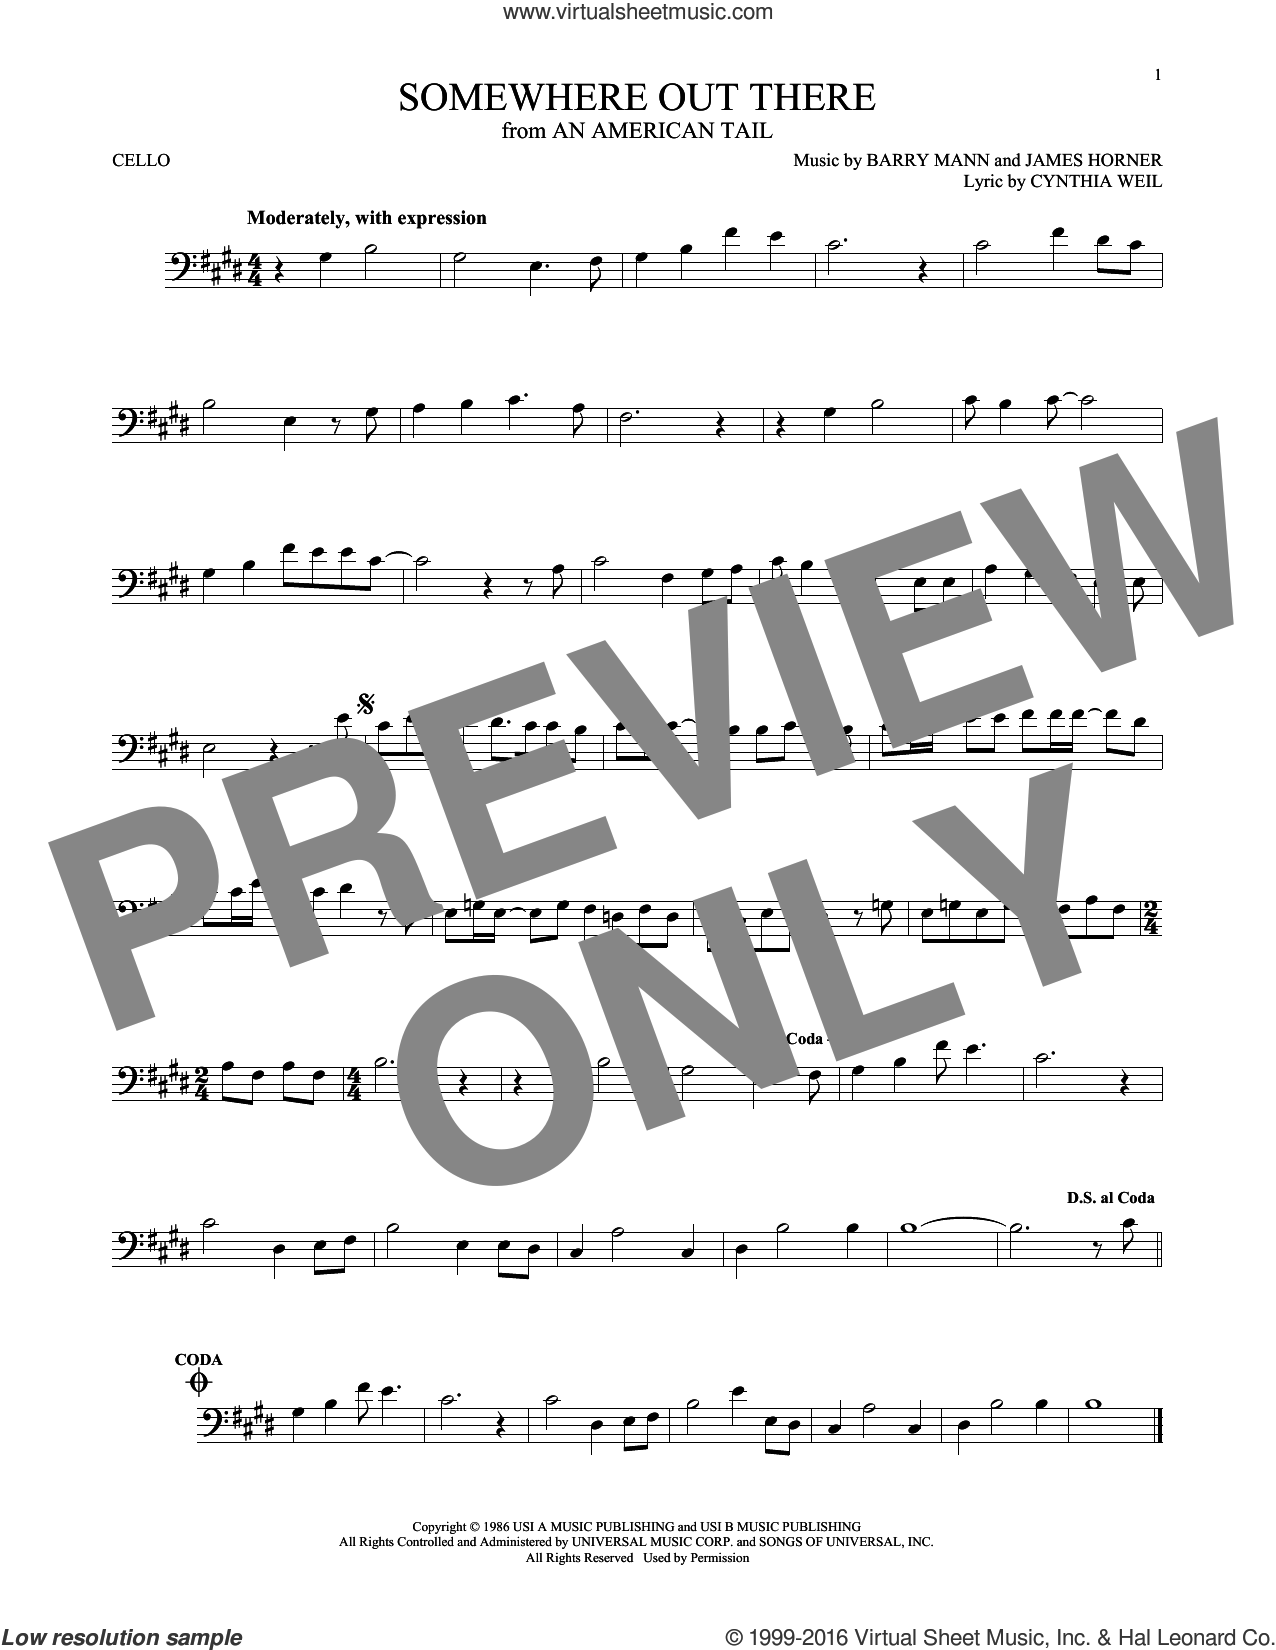 Somewhere Out There sheet music for cello solo by Linda Ronstadt & James Ingram, Barry Mann, Cynthia Weil and James Horner, intermediate skill level